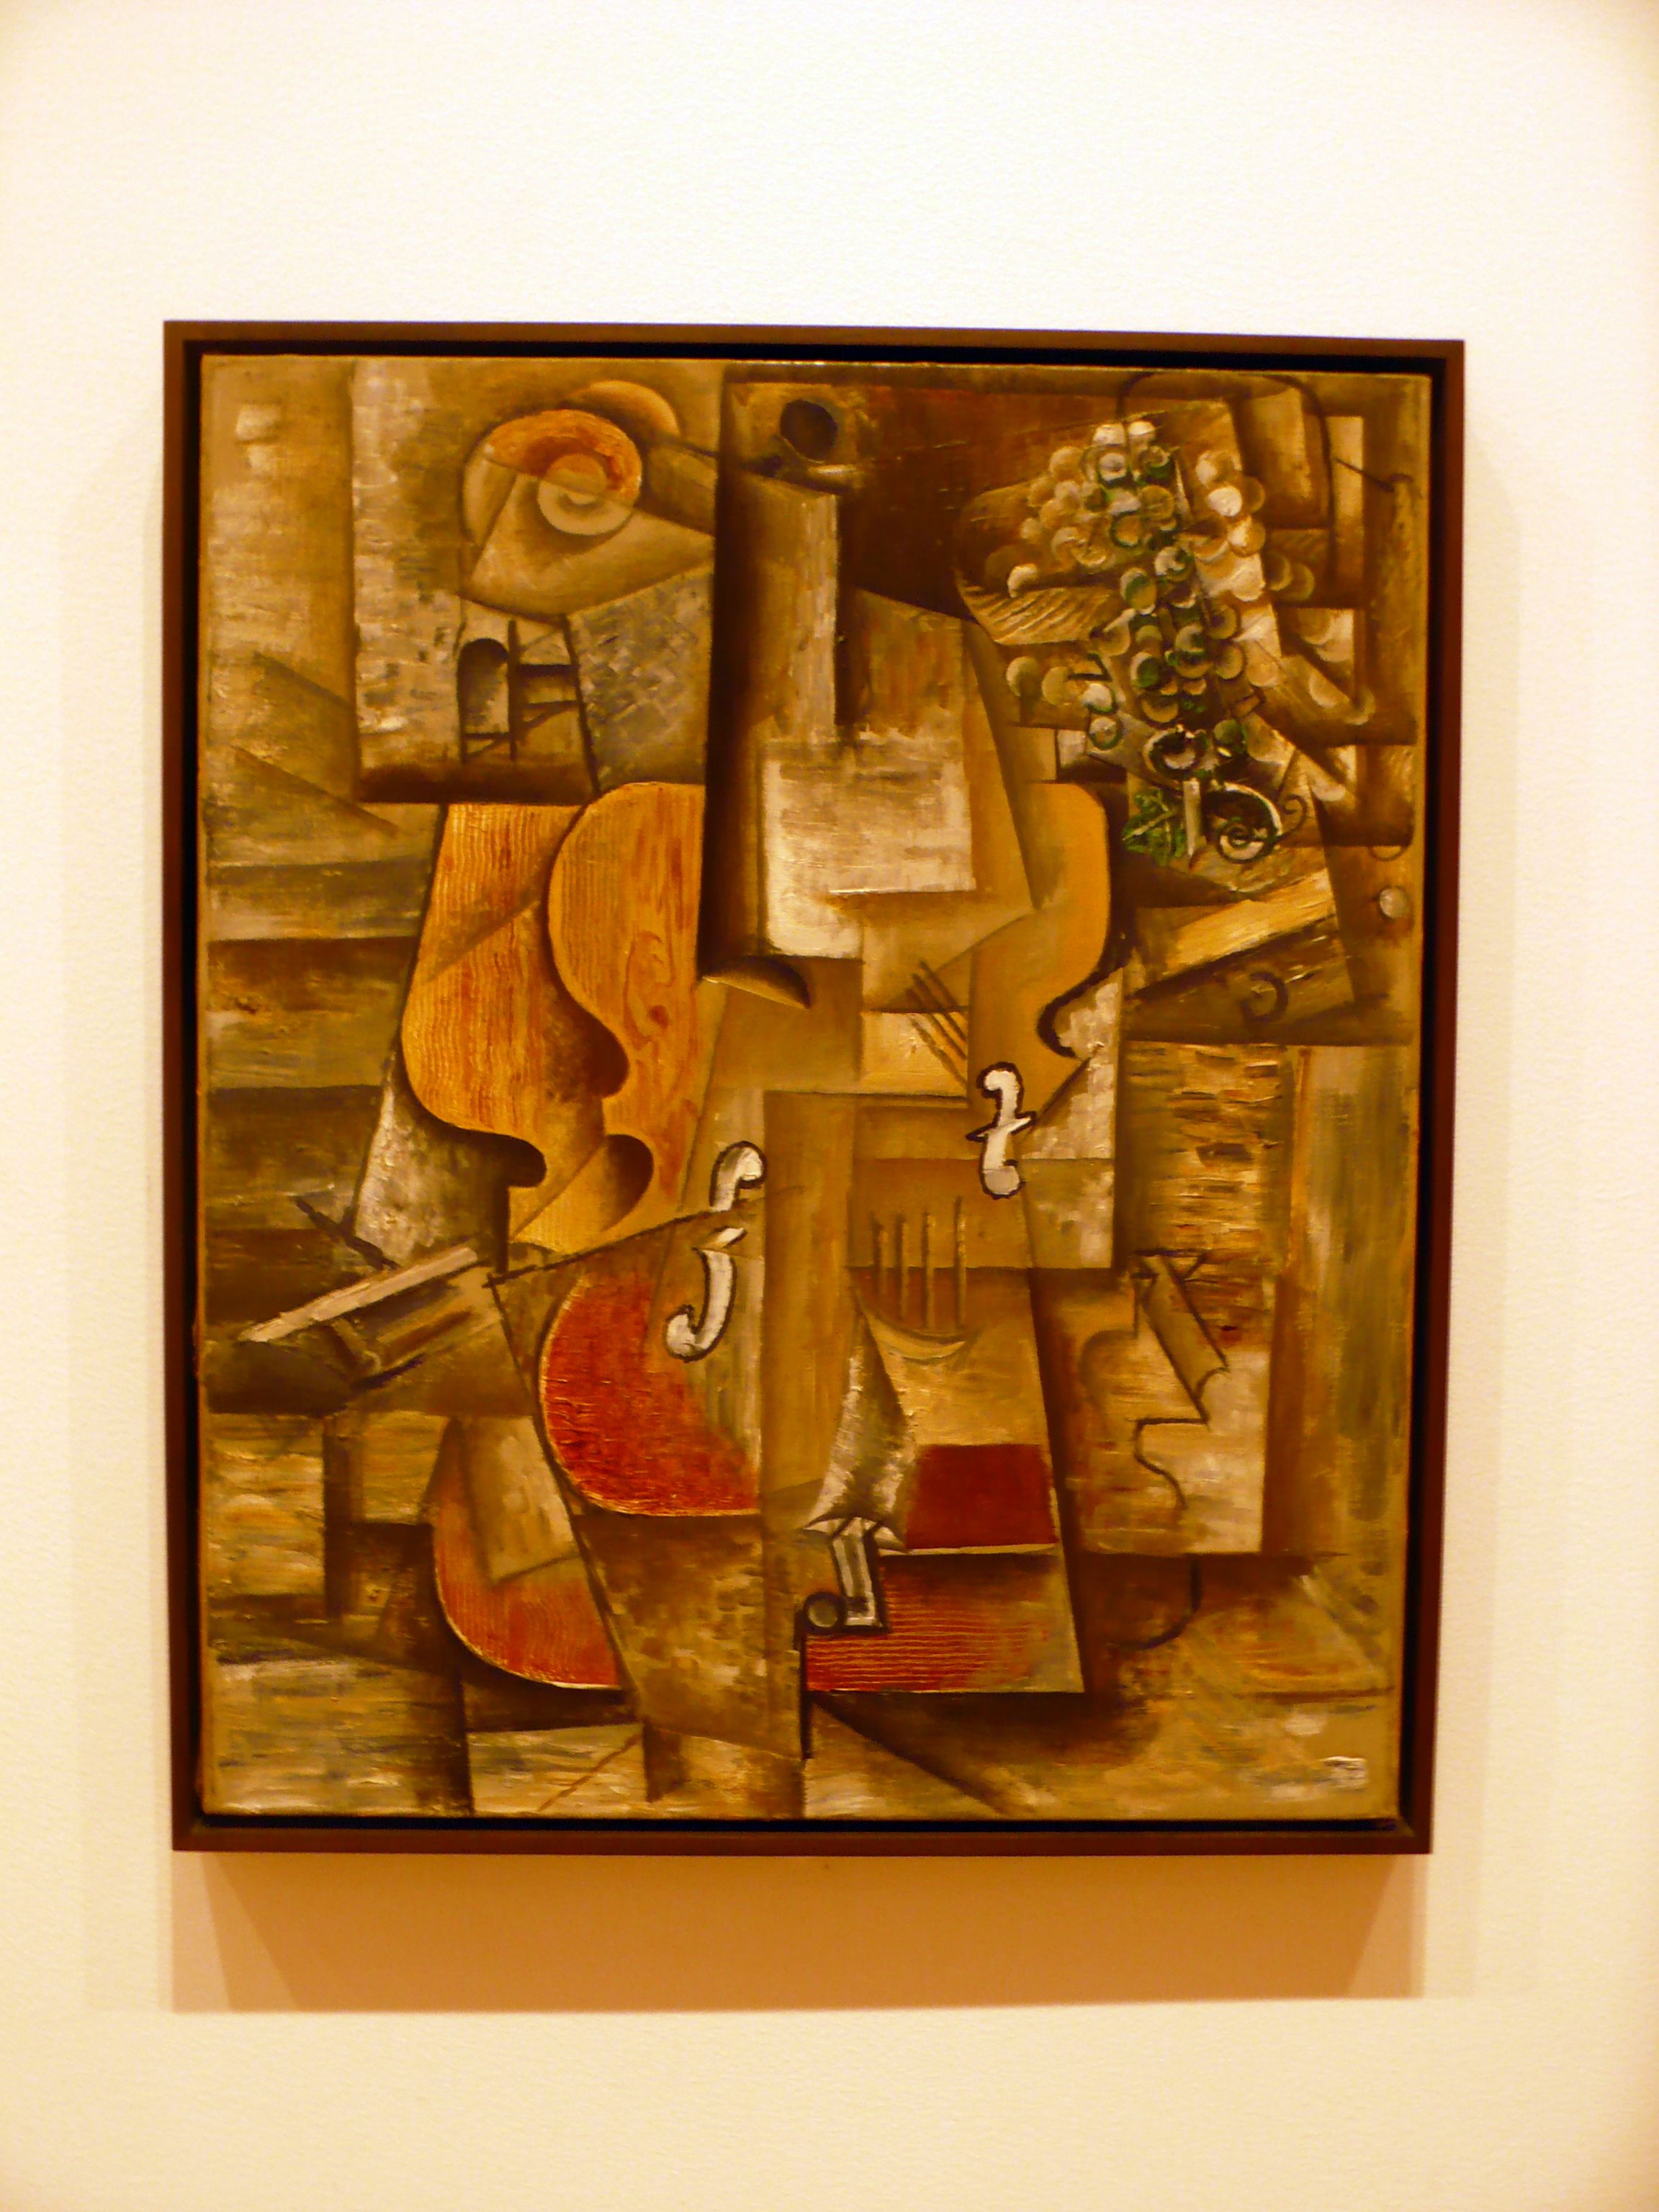 Violin and Grapes Pablo Picasso Cubism Paintings